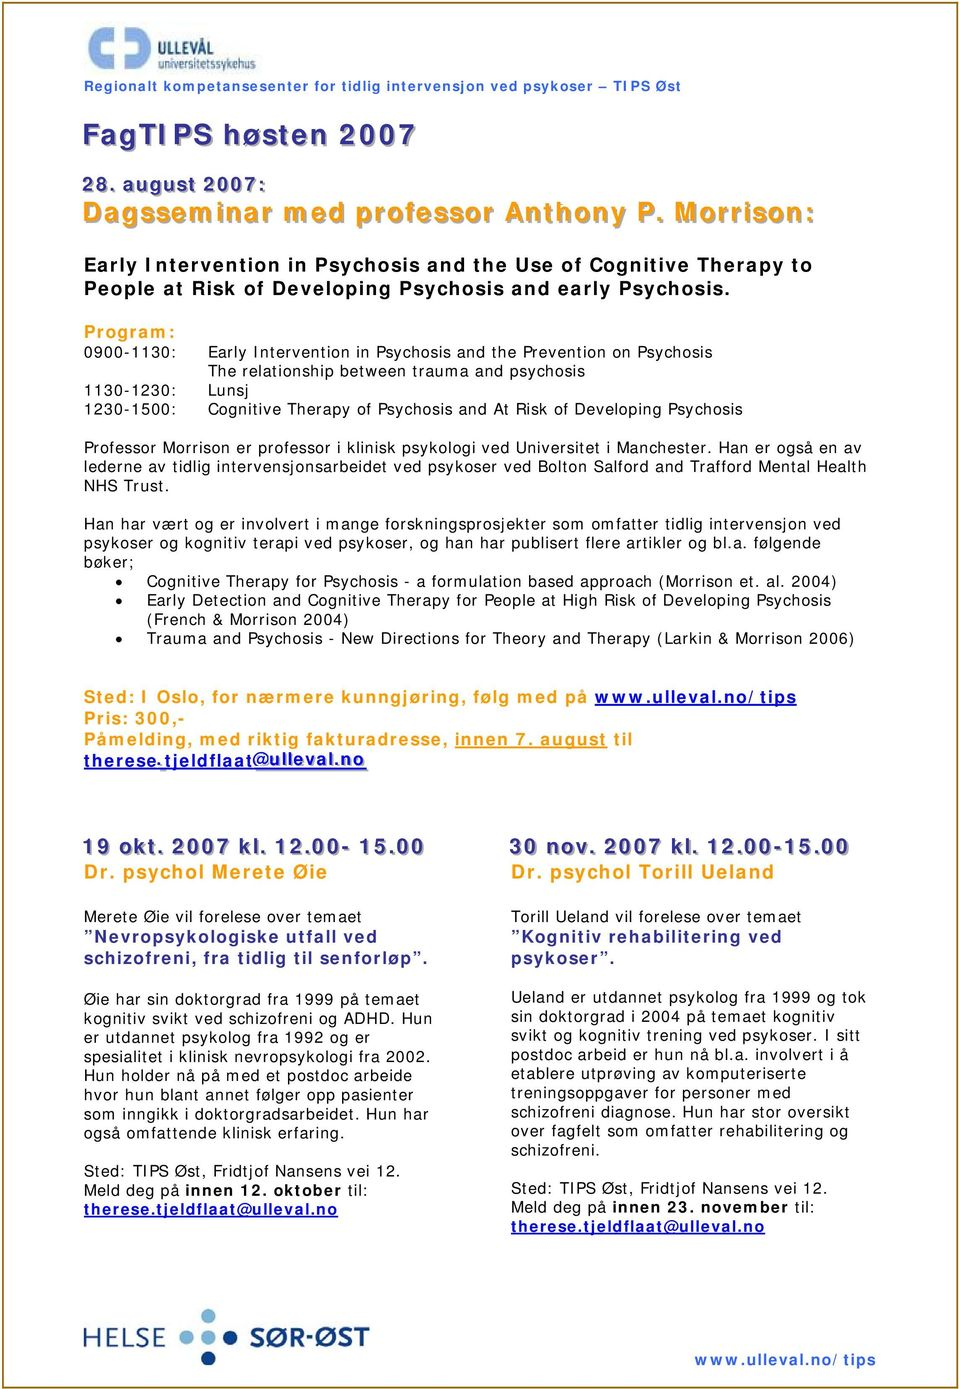 Program: 0900-1130: Early Intervention in Psychosis and the Prevention on Psychosis The relationship between trauma and psychosis 1130-1230: Lunsj 1230-1500: Cognitive Therapy of Psychosis and At